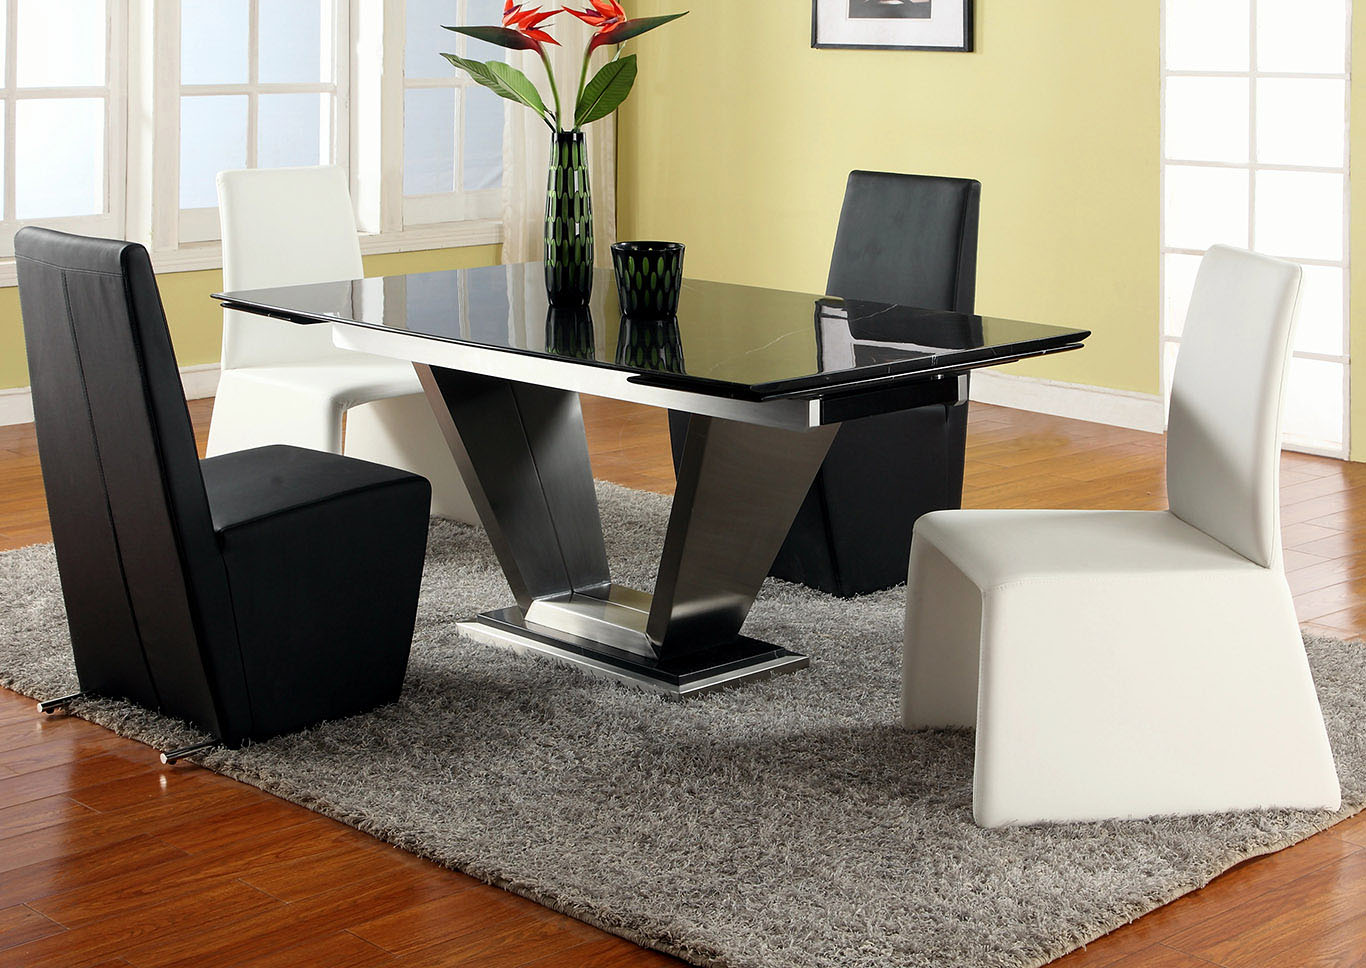 Jessy-Cynthia Grey Dining Table w/4 Side Chairs,Chintaly Imports